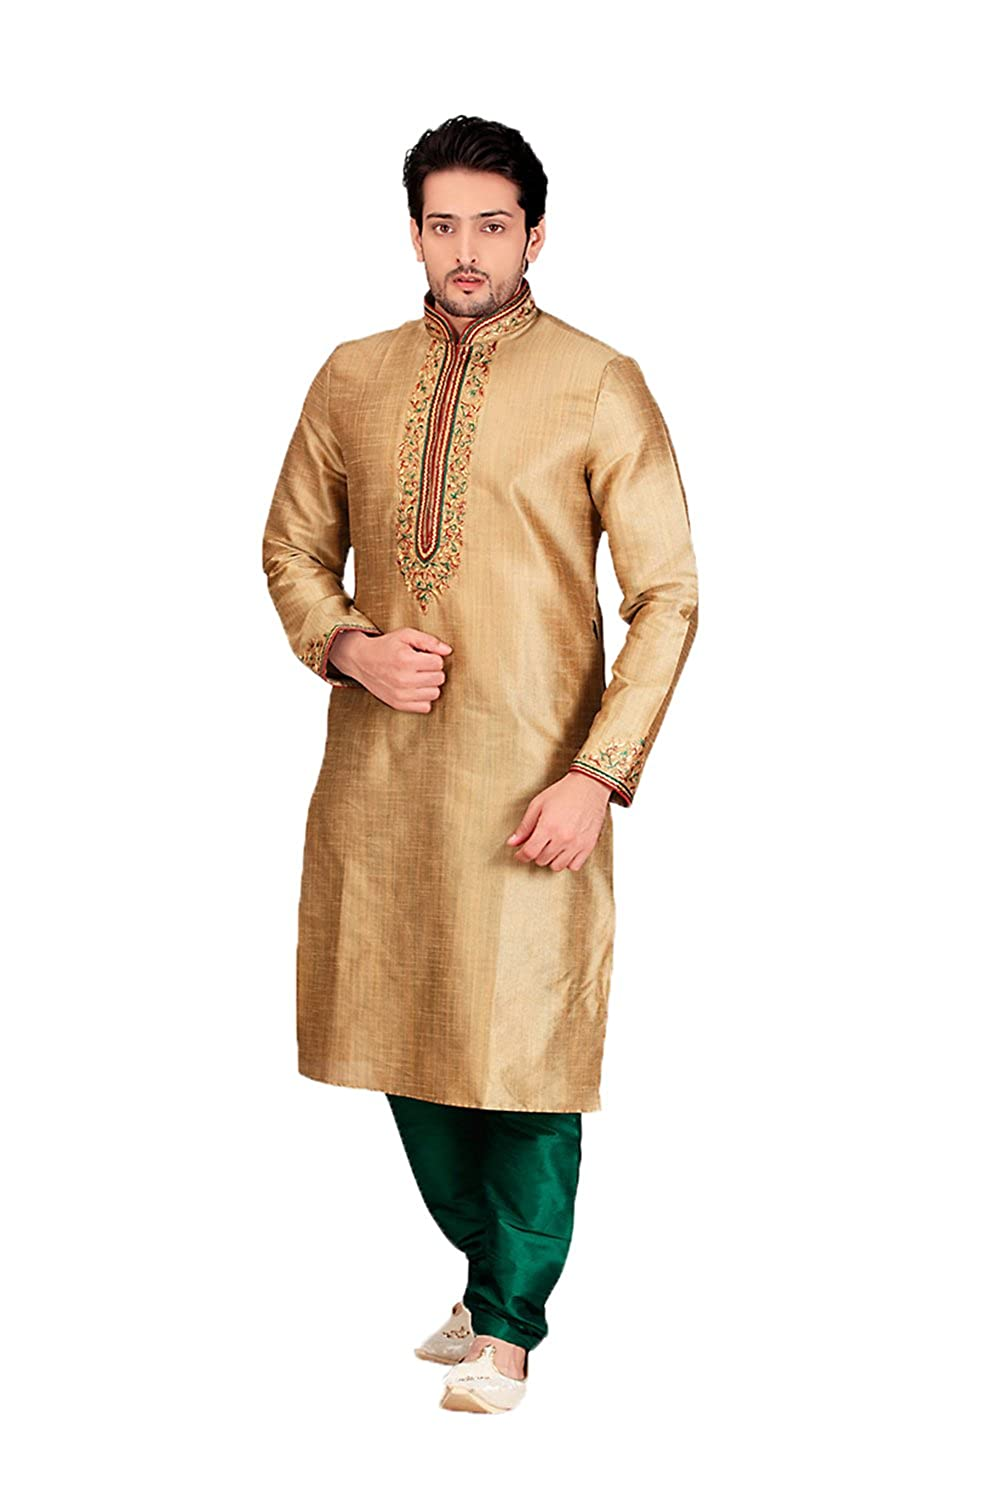 Daindiashop USA Indian Kurta pajama set for Men Wedding Festival Green 1619340